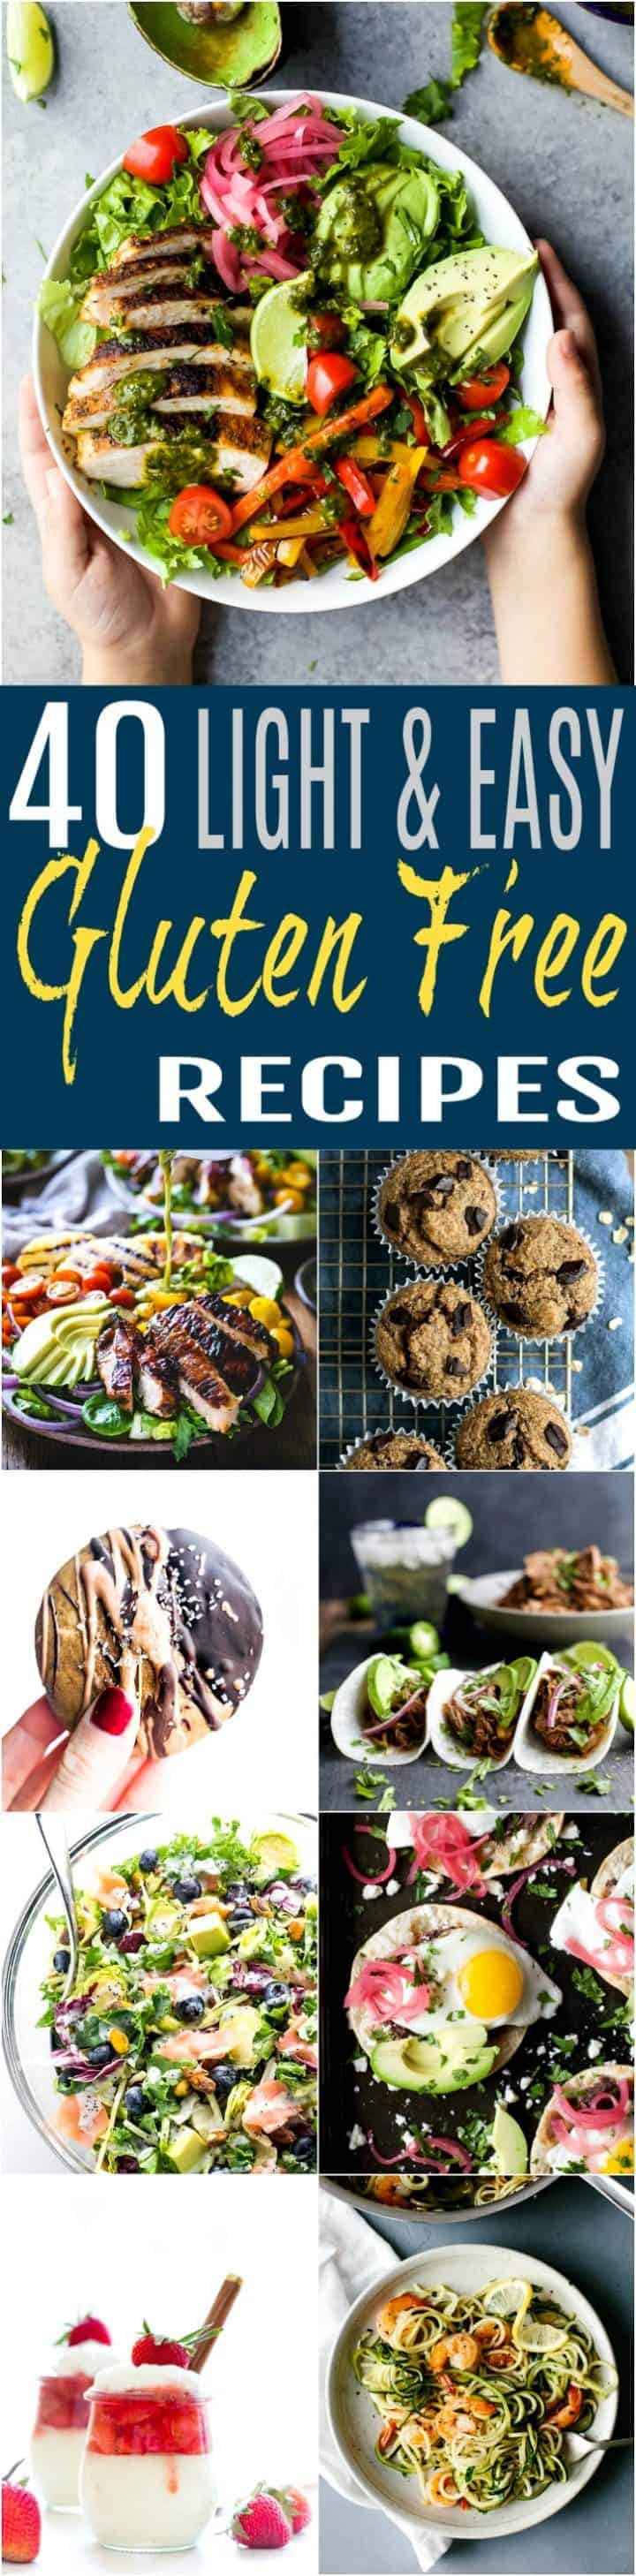 40 Of The Best Light Easy Gluten Free Recipes Easy Healthy Recipes